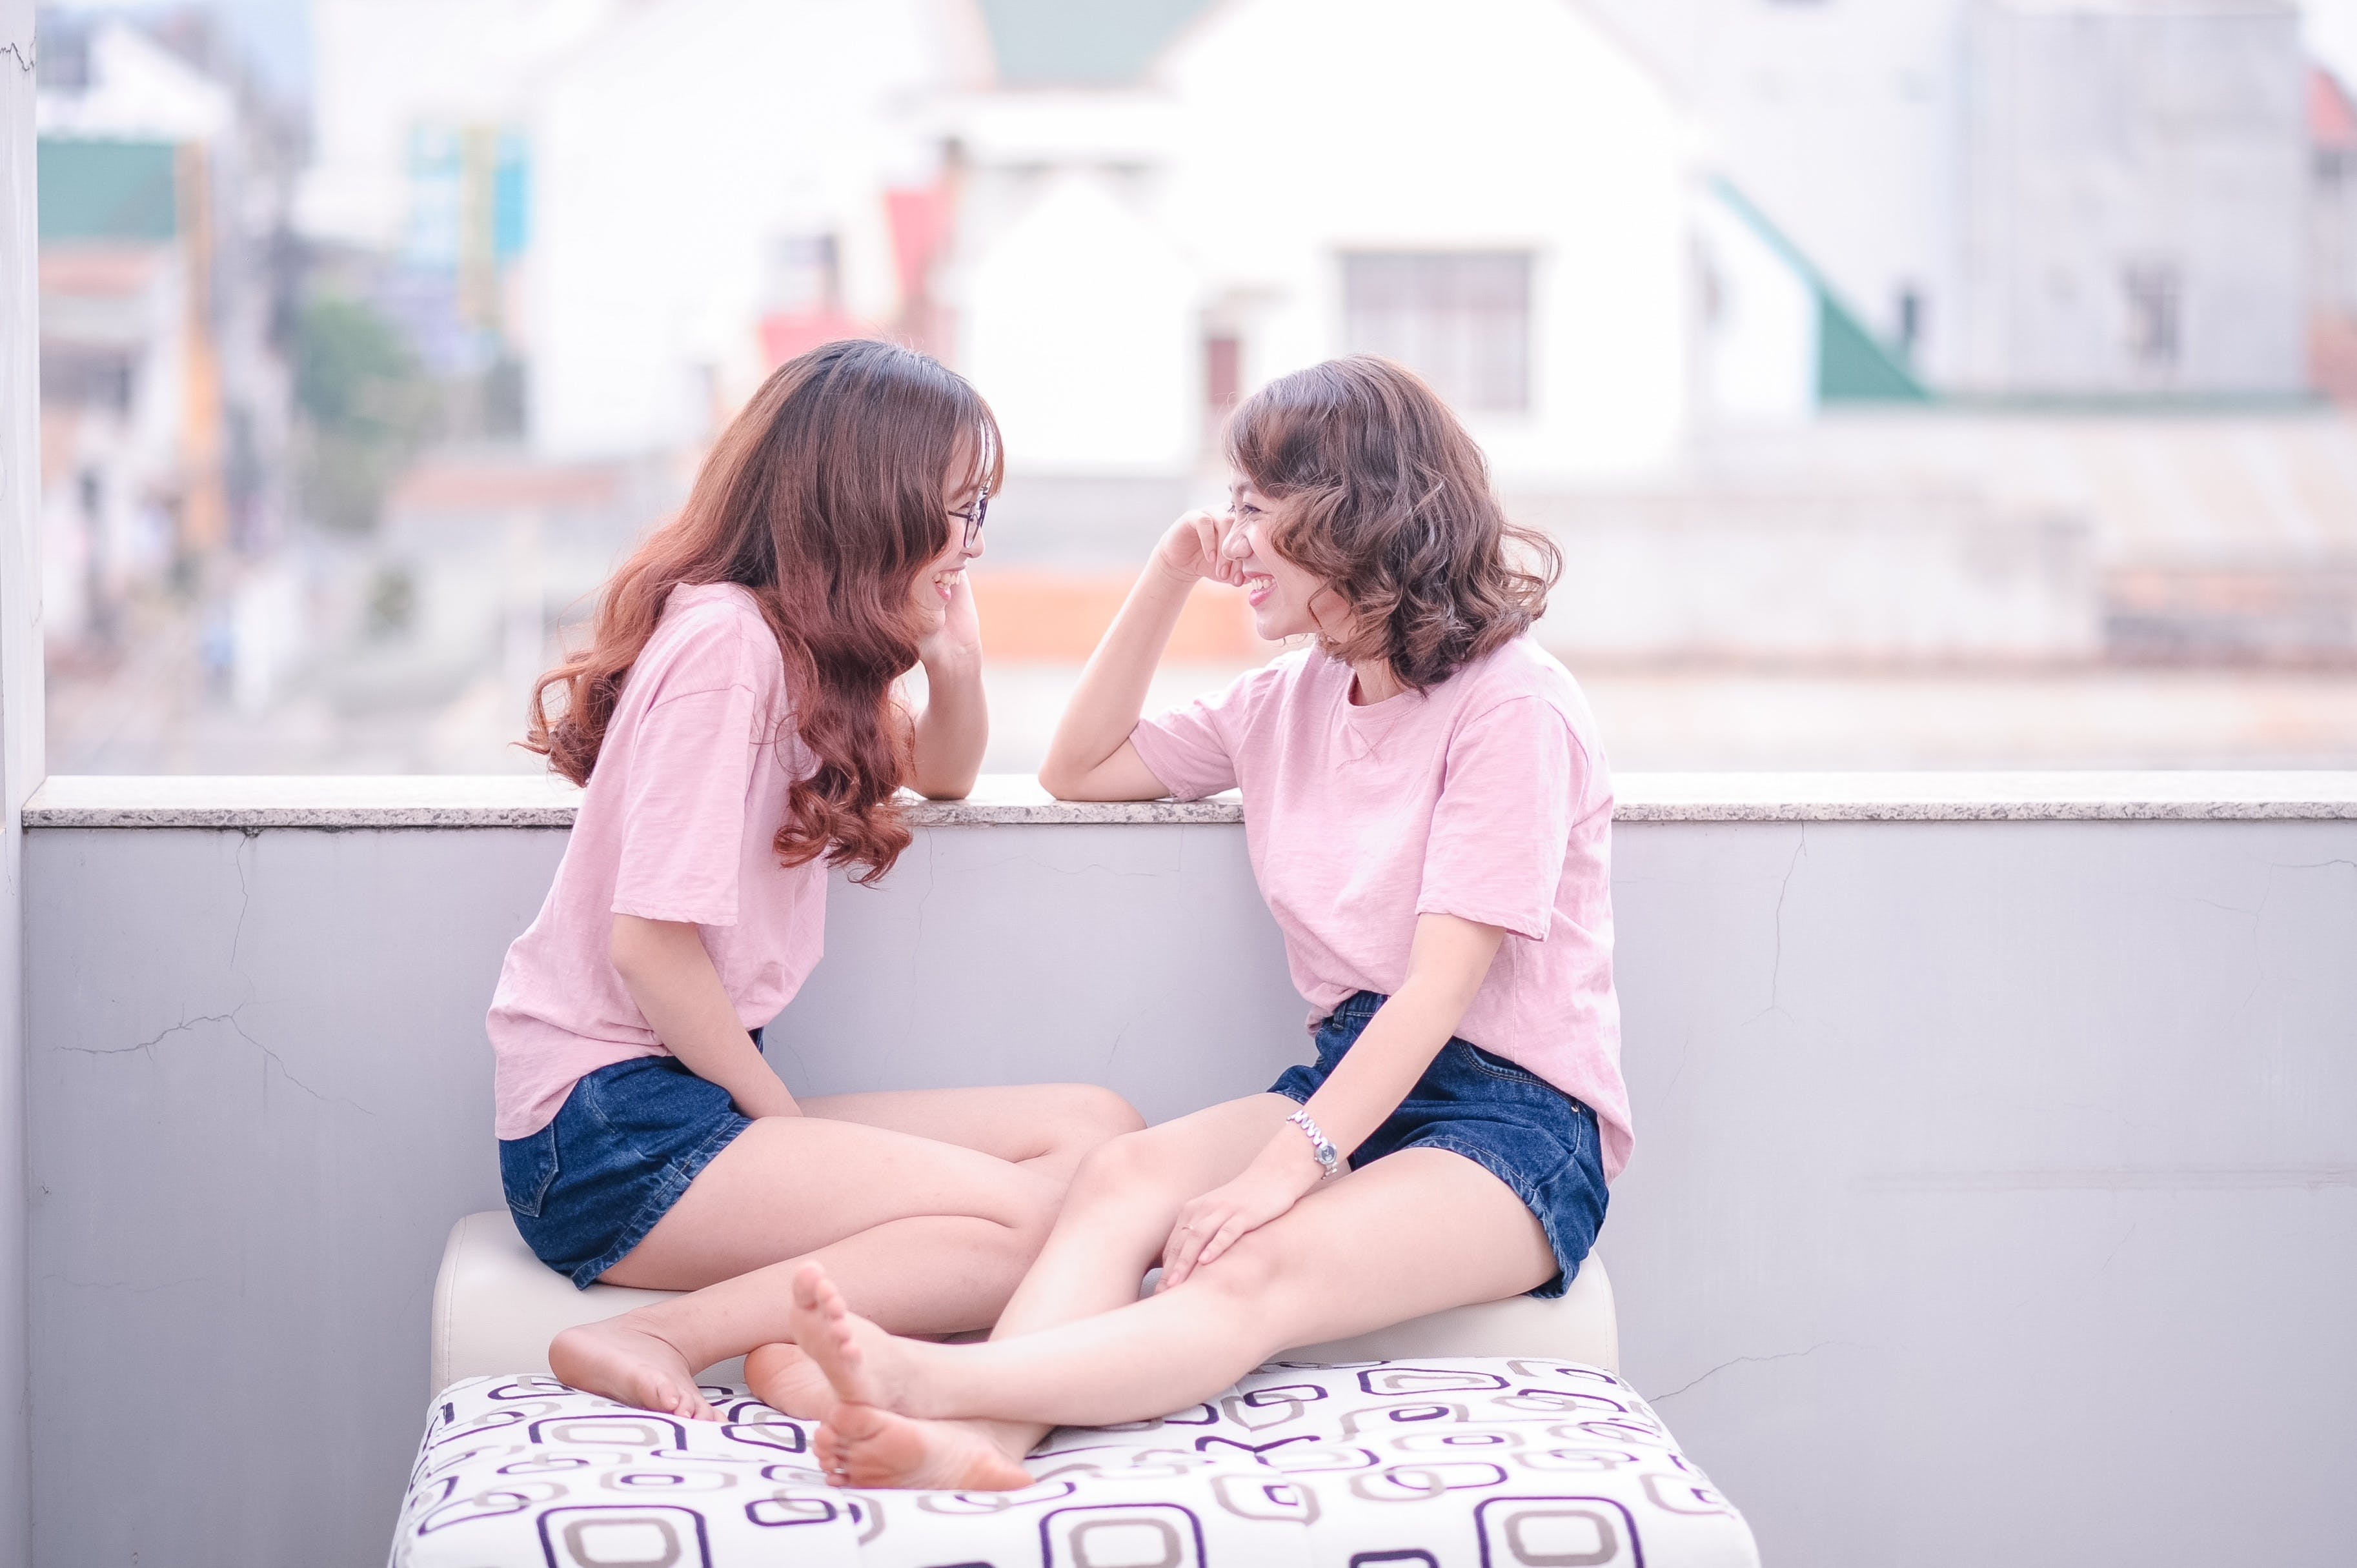 Two Women Wearing Pink T-shirts